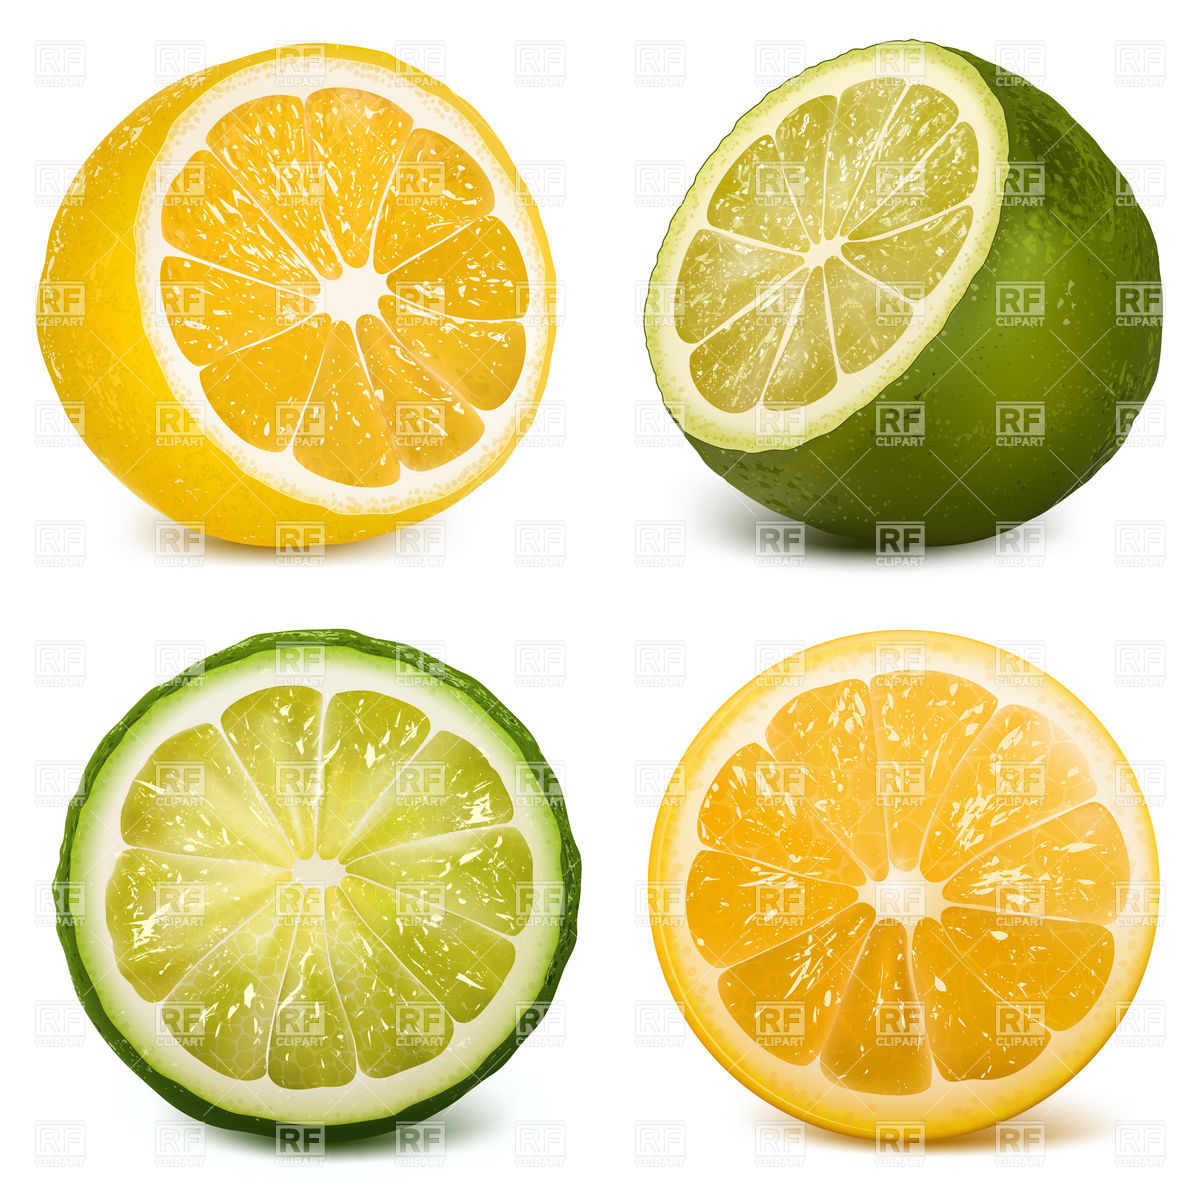 1200x1198 Ctrus Fruits Lime And Lemon Vector Image Vector Artwork Of Food